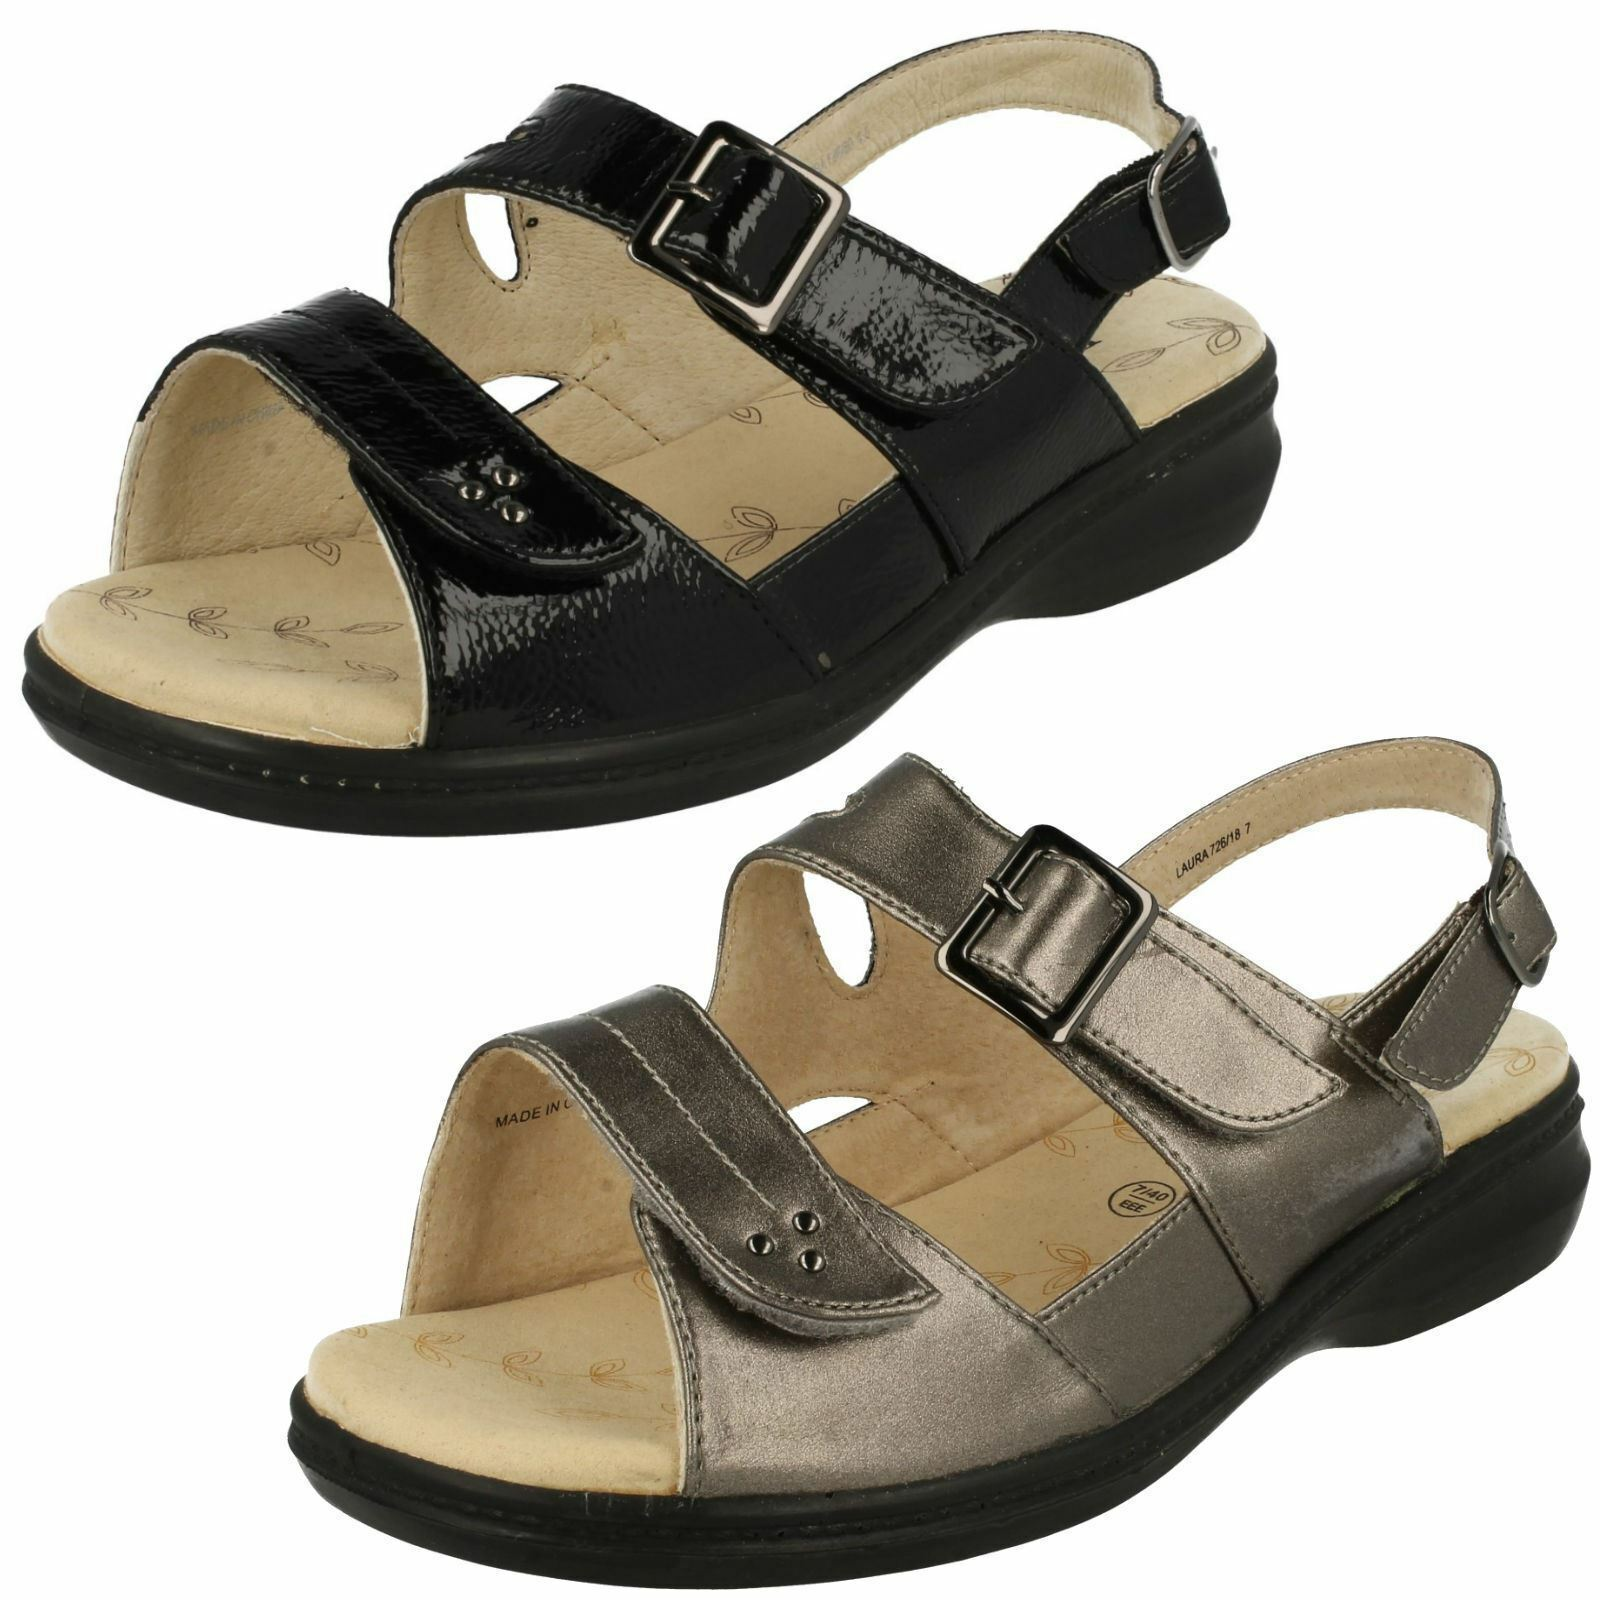 LADIES PADDERS LAURA EXTRA WIDE OPEN TOE BUCKLE FASTEN CASUAL SUMMER SANDALS